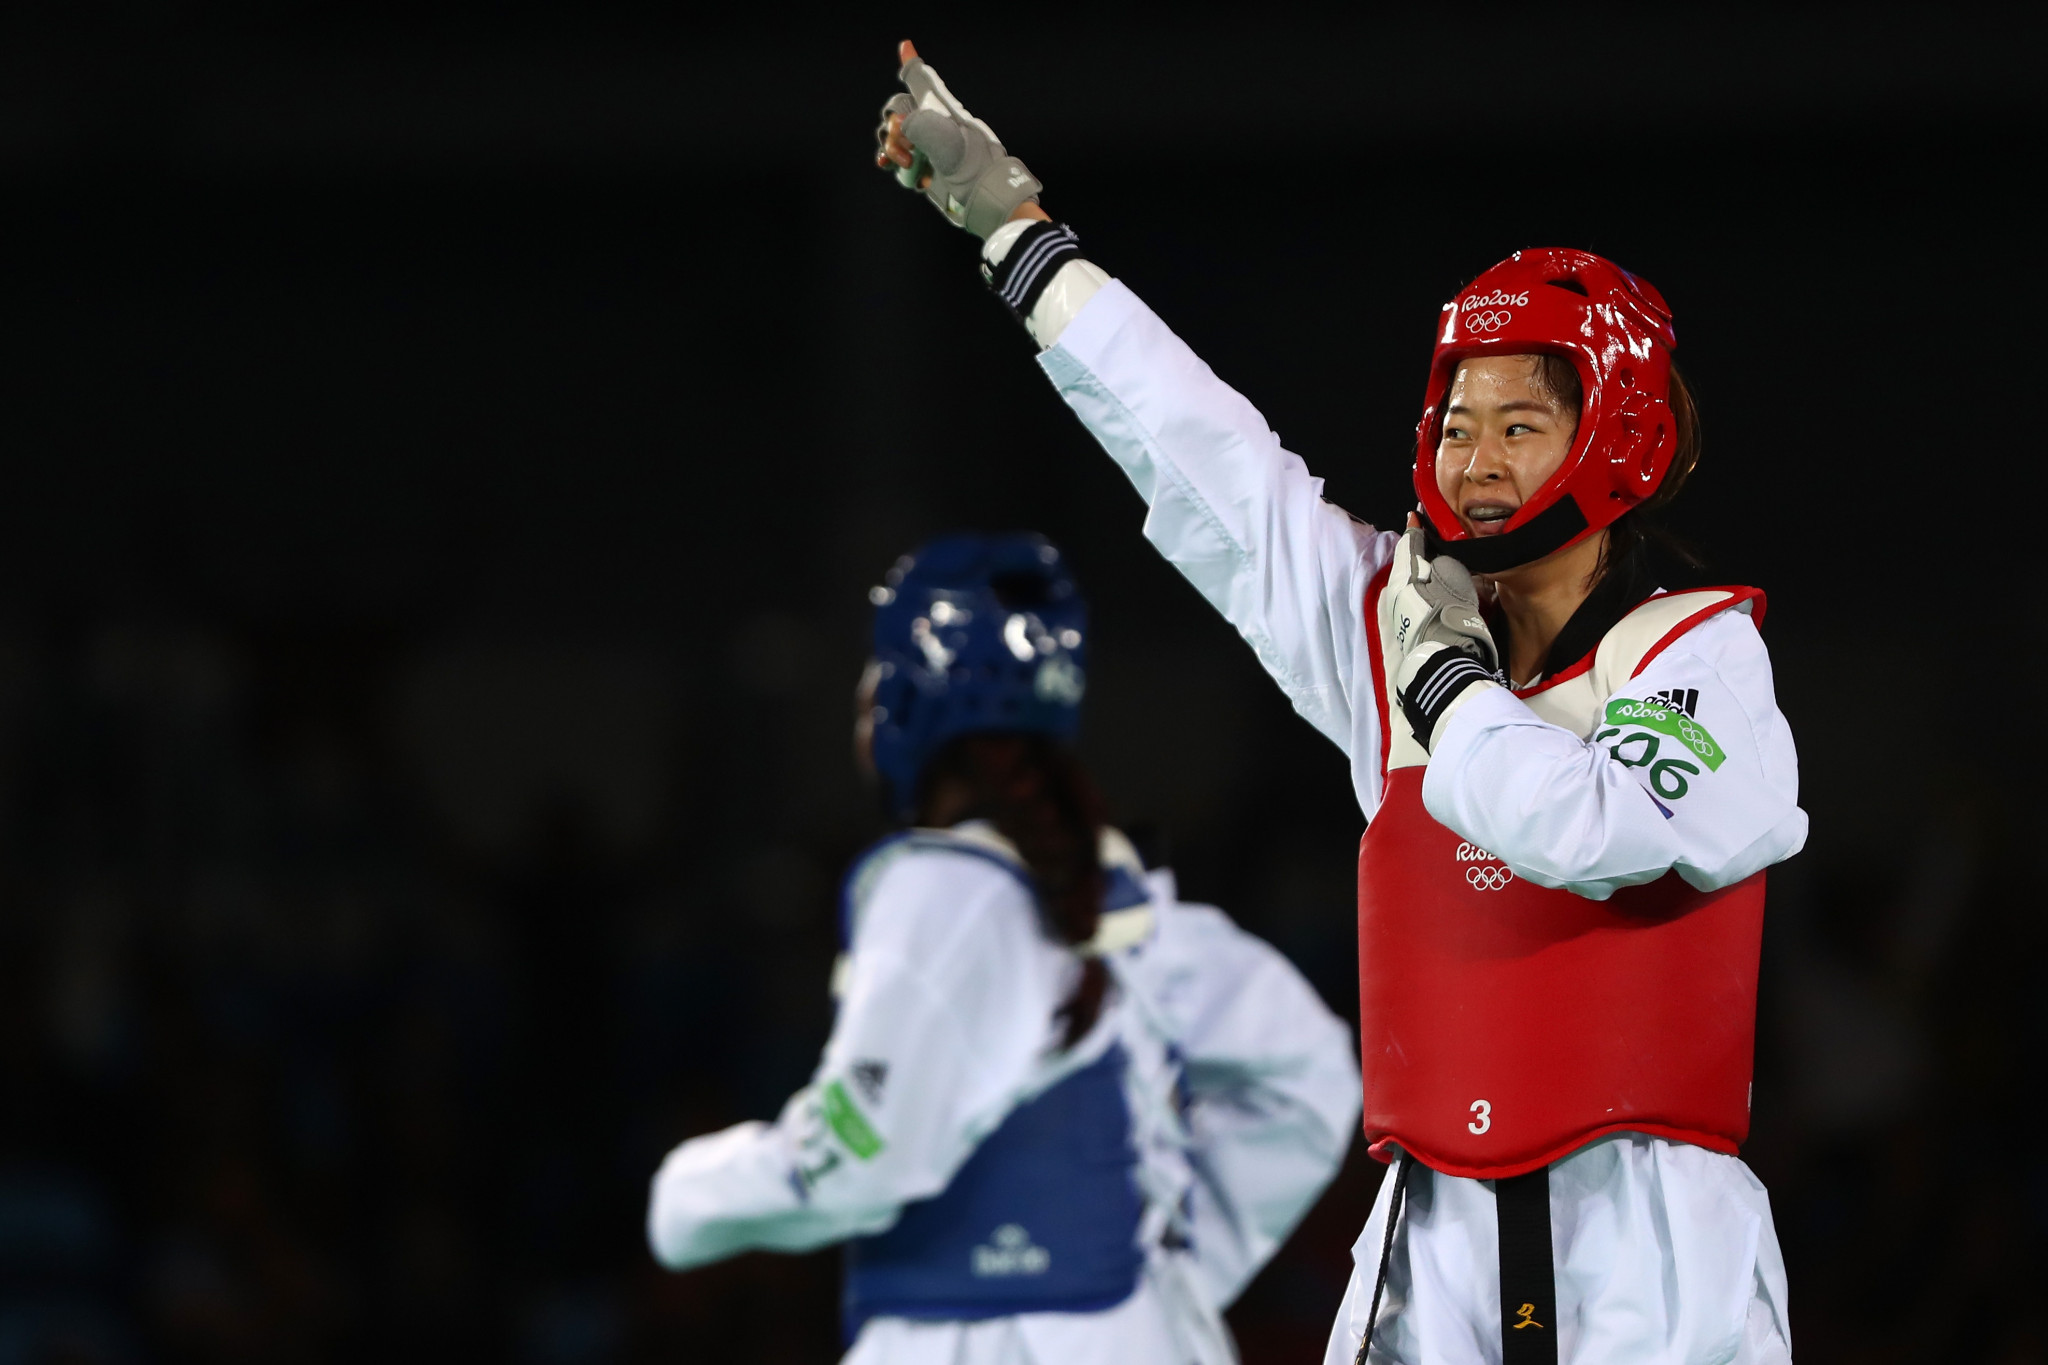 Hye-ri Oh is a reigning Olympic champion and three-time World Championships medallist ©Getty Images